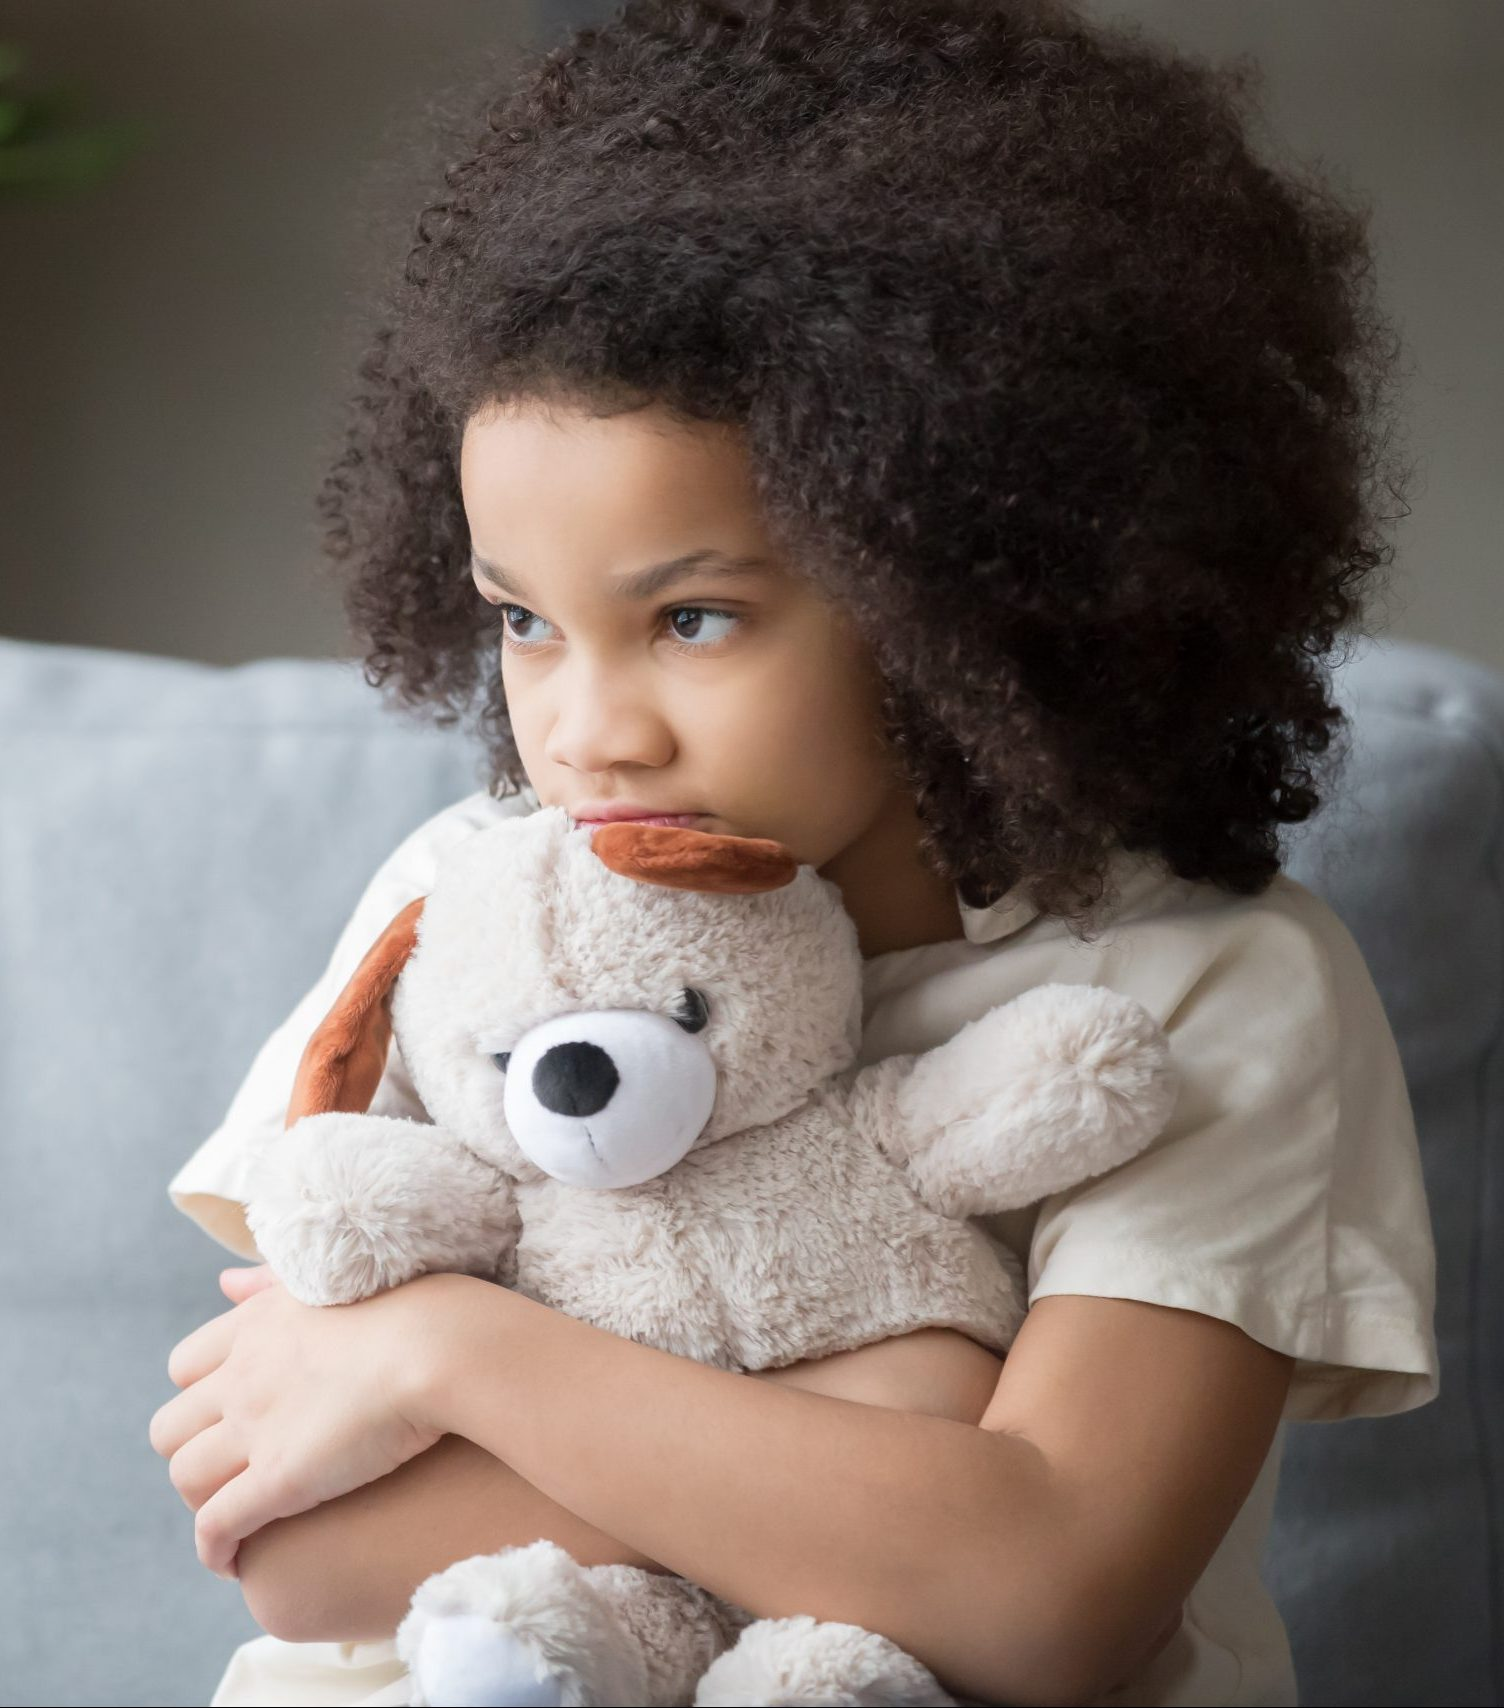 Does My Child Have a UTI?